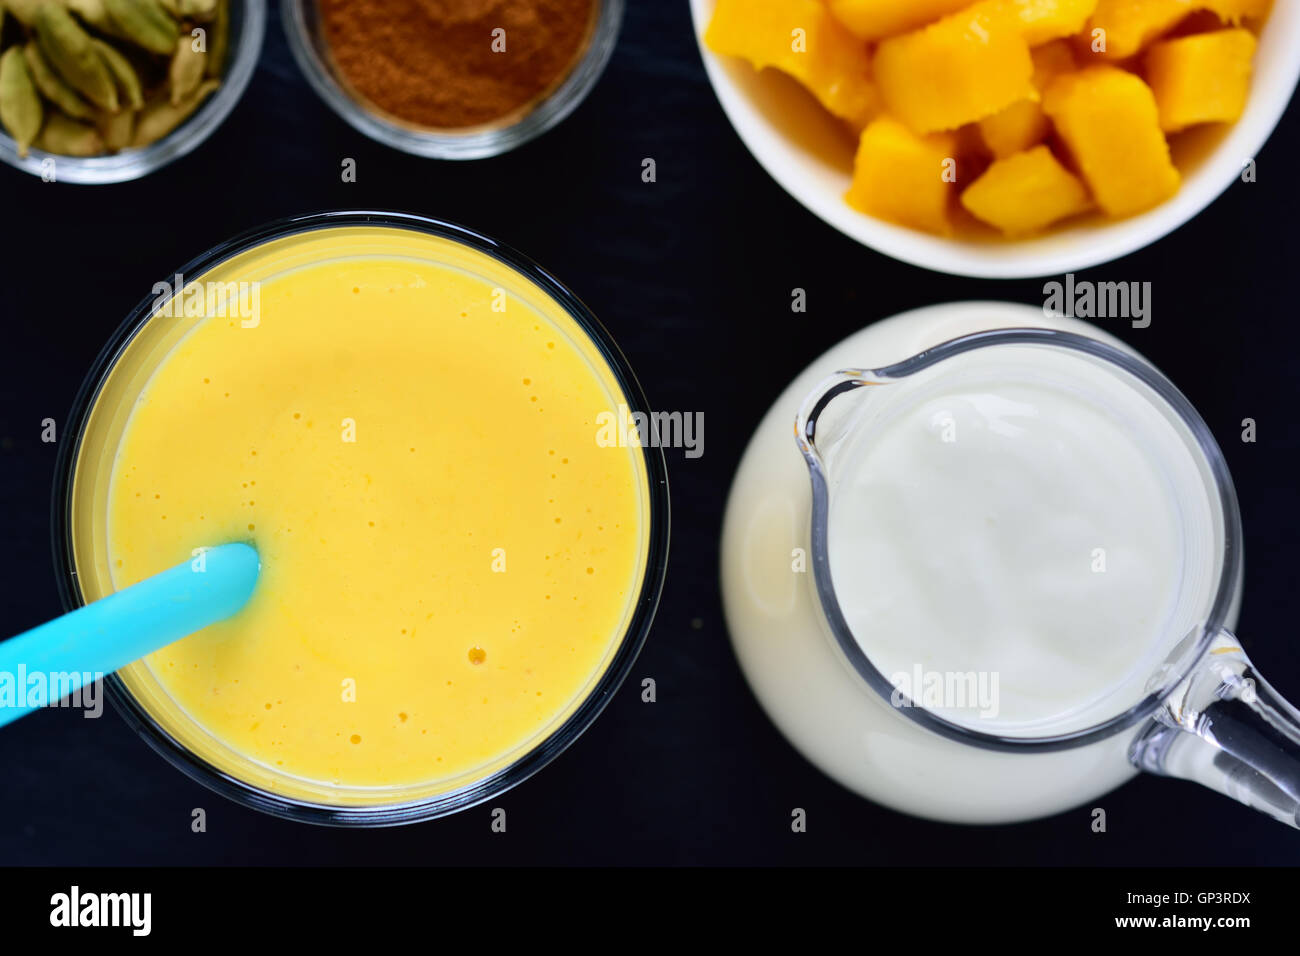 Mango lassi. Mango smoothie made with mango and yogurt, yoghurt. Selective focus. Top view. - Stock Image